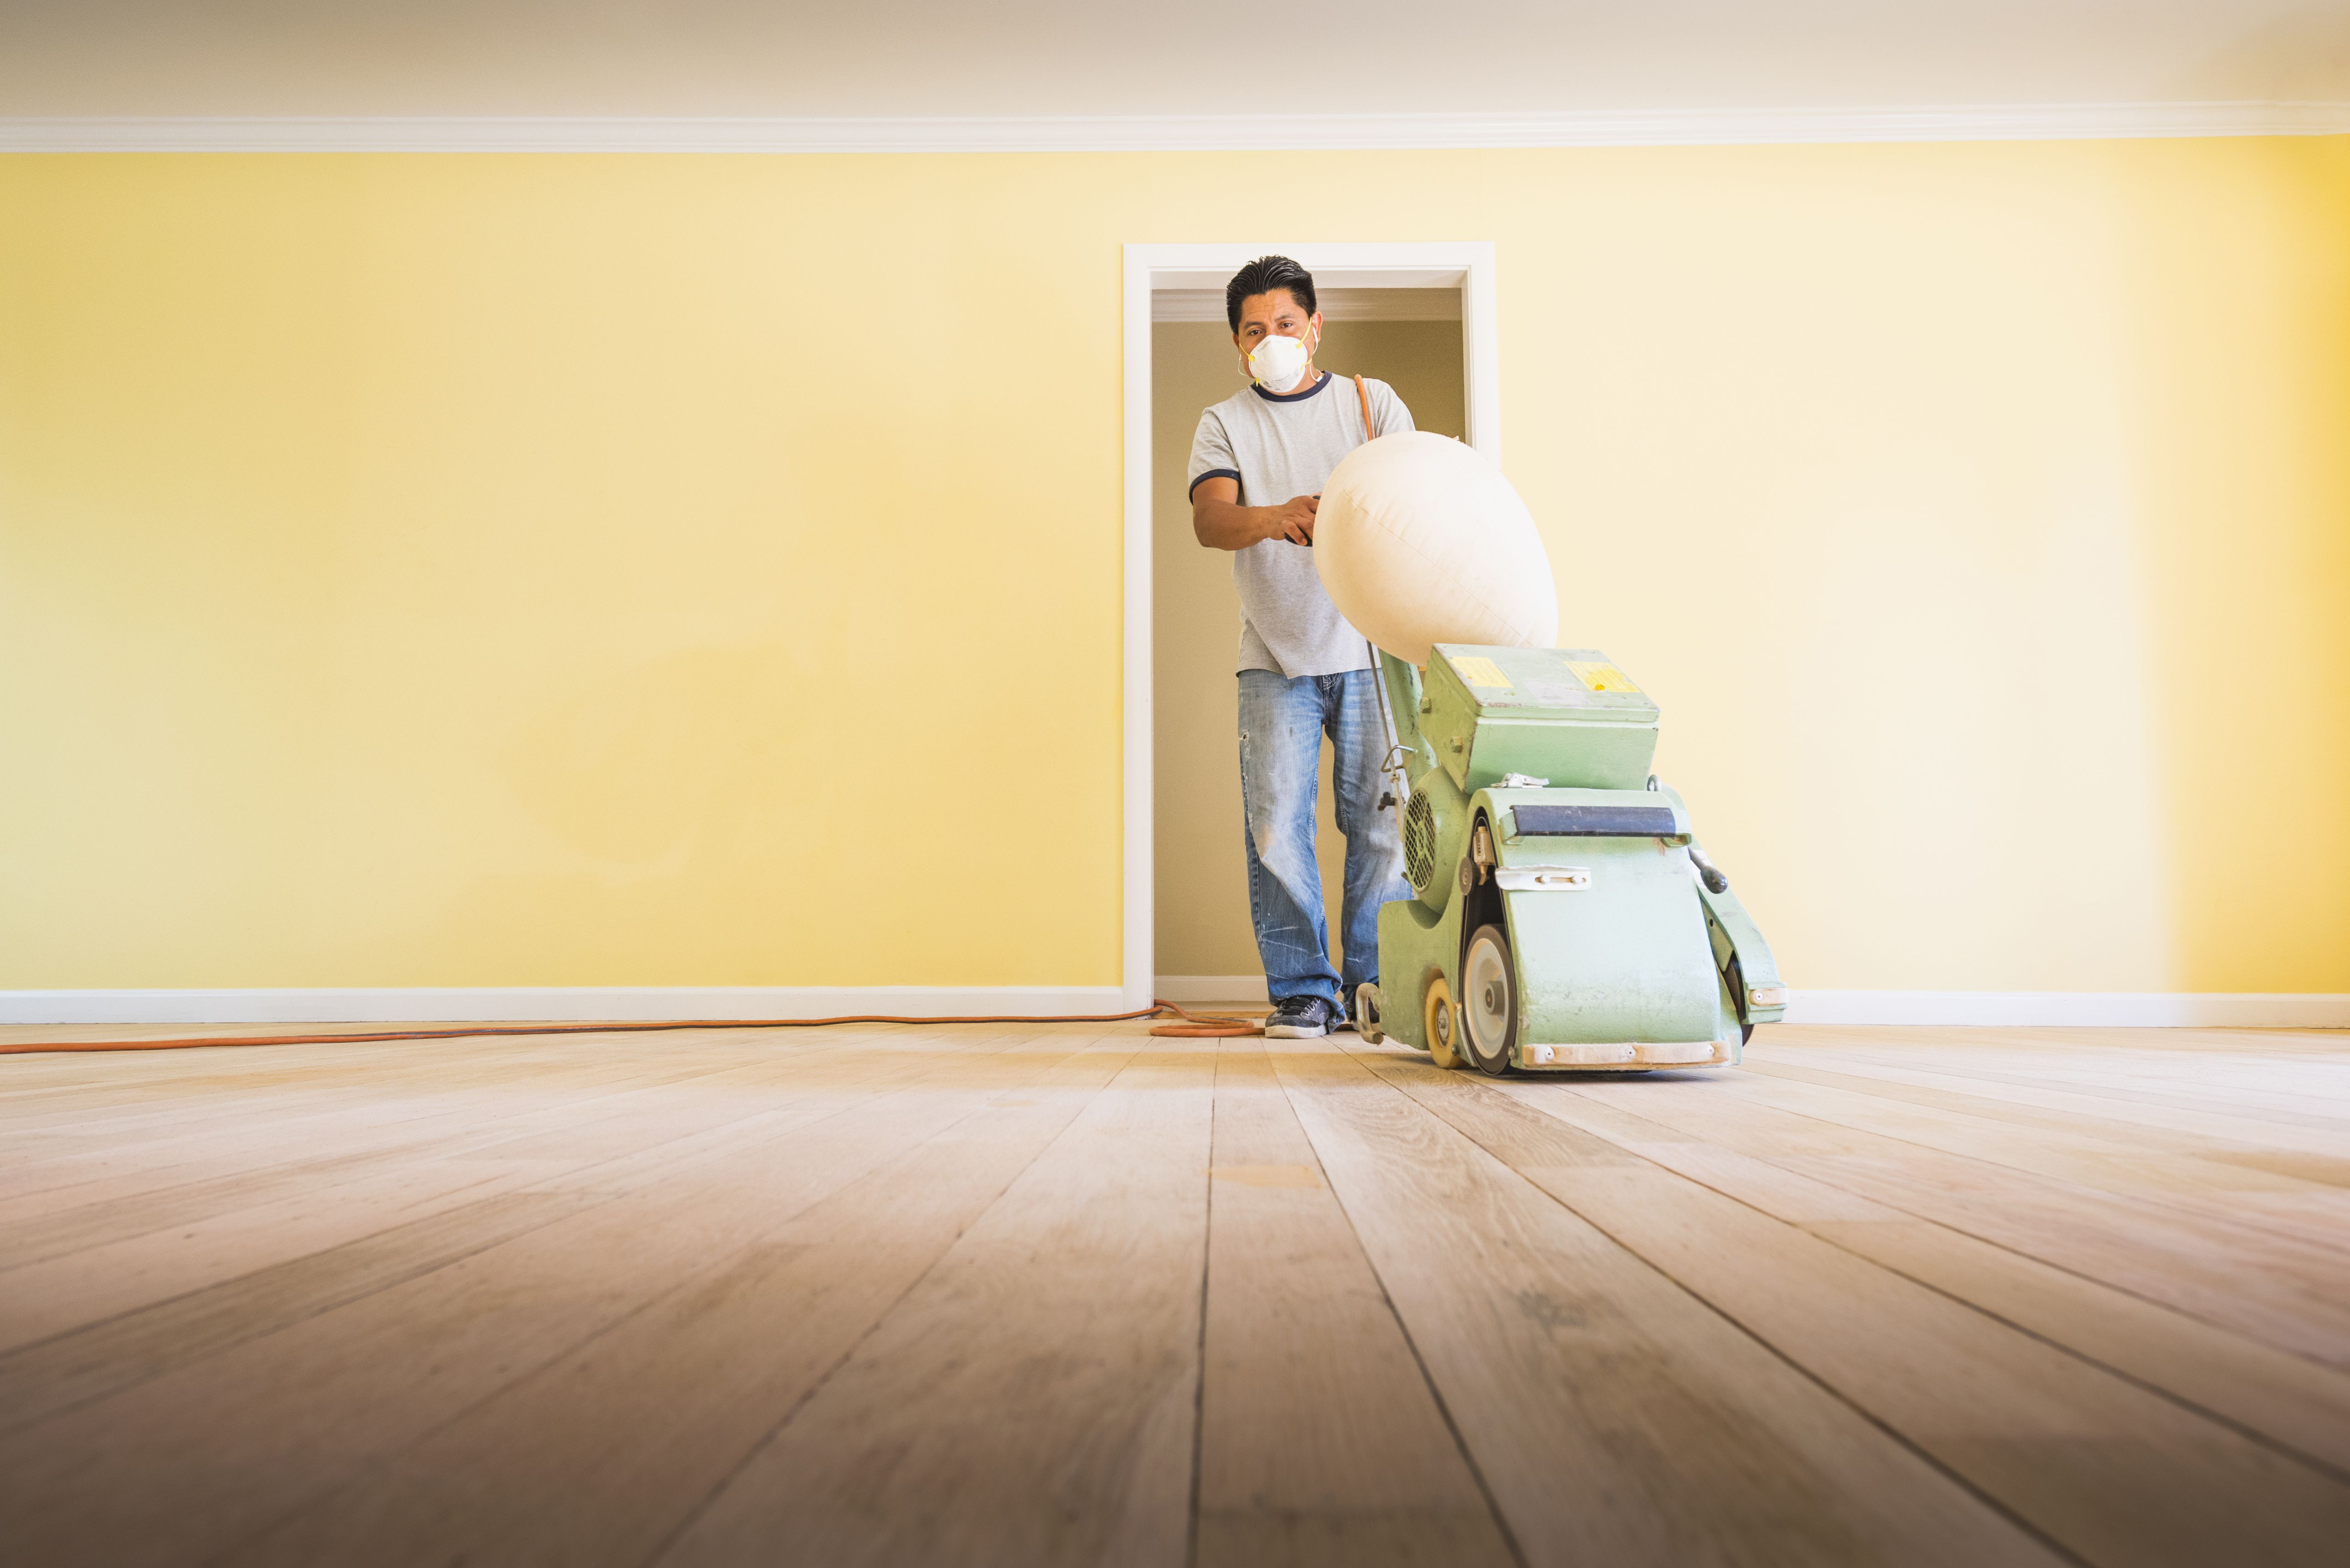 choosing hardwood floor color of should you paint walls or refinish floors first regarding floorsandingafterpainting 5a8f08dfae9ab80037d9d878